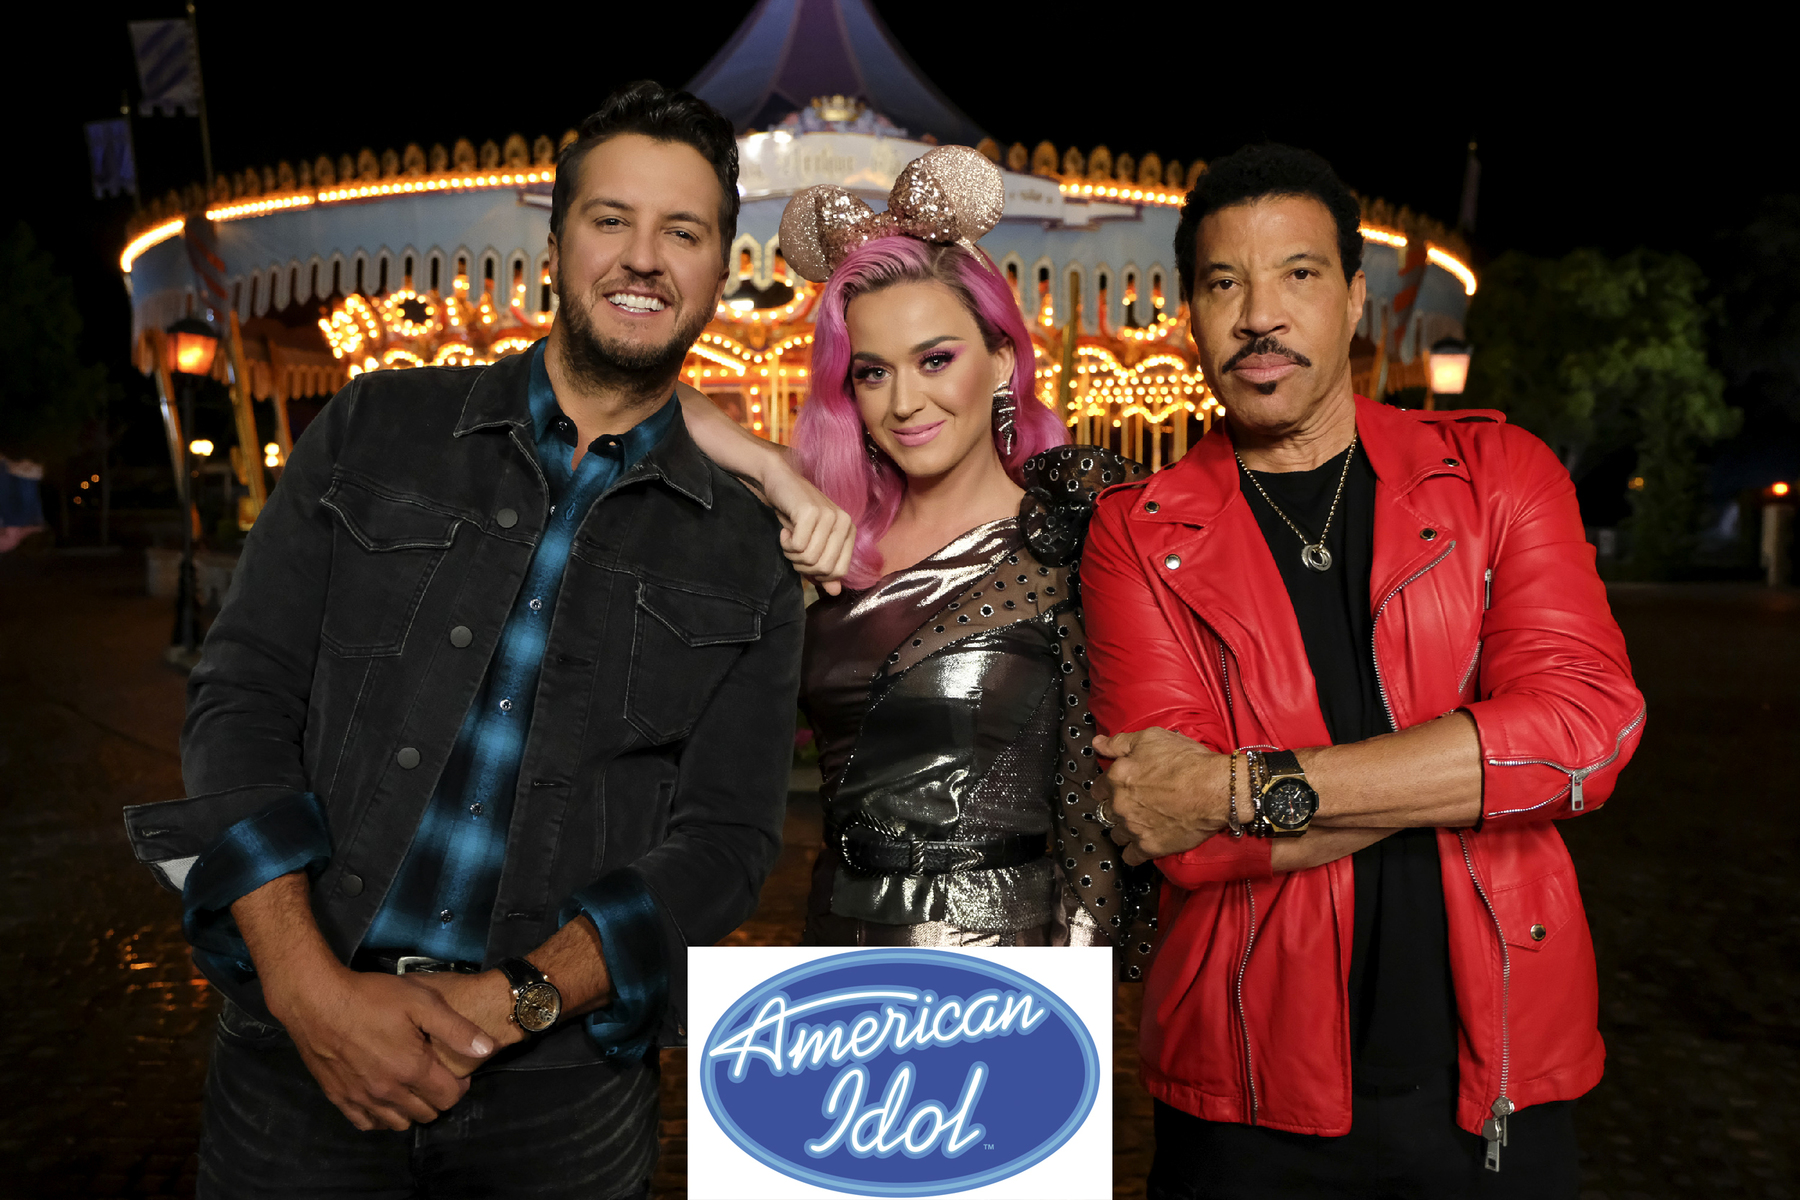 """214 (Disney Night)"" - ""American Idol""'s Top 10 contestants head to The Happiest Place On Earth, Disneyland Park in Anaheim, California, to prepare for the next phase of the competition, Disney Night. The finalists will be joined by celebrity mentor Rebel Wilson, who will offer up her pitch-perfect expertise as the superstar hopefuls prepare for their Disney-themed performances. All-star judges Katy Perry, Luke Bryan and Lionel Richie will perform a timeless Disney song in Disneyland Park's Fantasyland. The Top 10 will then return to the iconic Idol stage in Los Angeles to perform fan-favorite Disney songs, in hopes of winning America's heart and vote for a spot in the Top 8. Joining the Top 10 to perform the beloved song ""Part of Your World"" from Disney's ""The Little Mermaid"" is singer and actress Lea Michele. Also, America's sweethearts, ABC's Season 1 ""American Idol"" winner, Maddie Poppe, and runner-up Caleb Lee Hutchinson, return to the stage to sing a Disney classic during a special duet performance. The magic takes place SUNDAY, APRIL 21 (8:00-10:01 p.m. EDT/5:00-7:01 p.m. PDT), on The ABC Television Network. (ABC/John Fleenor)